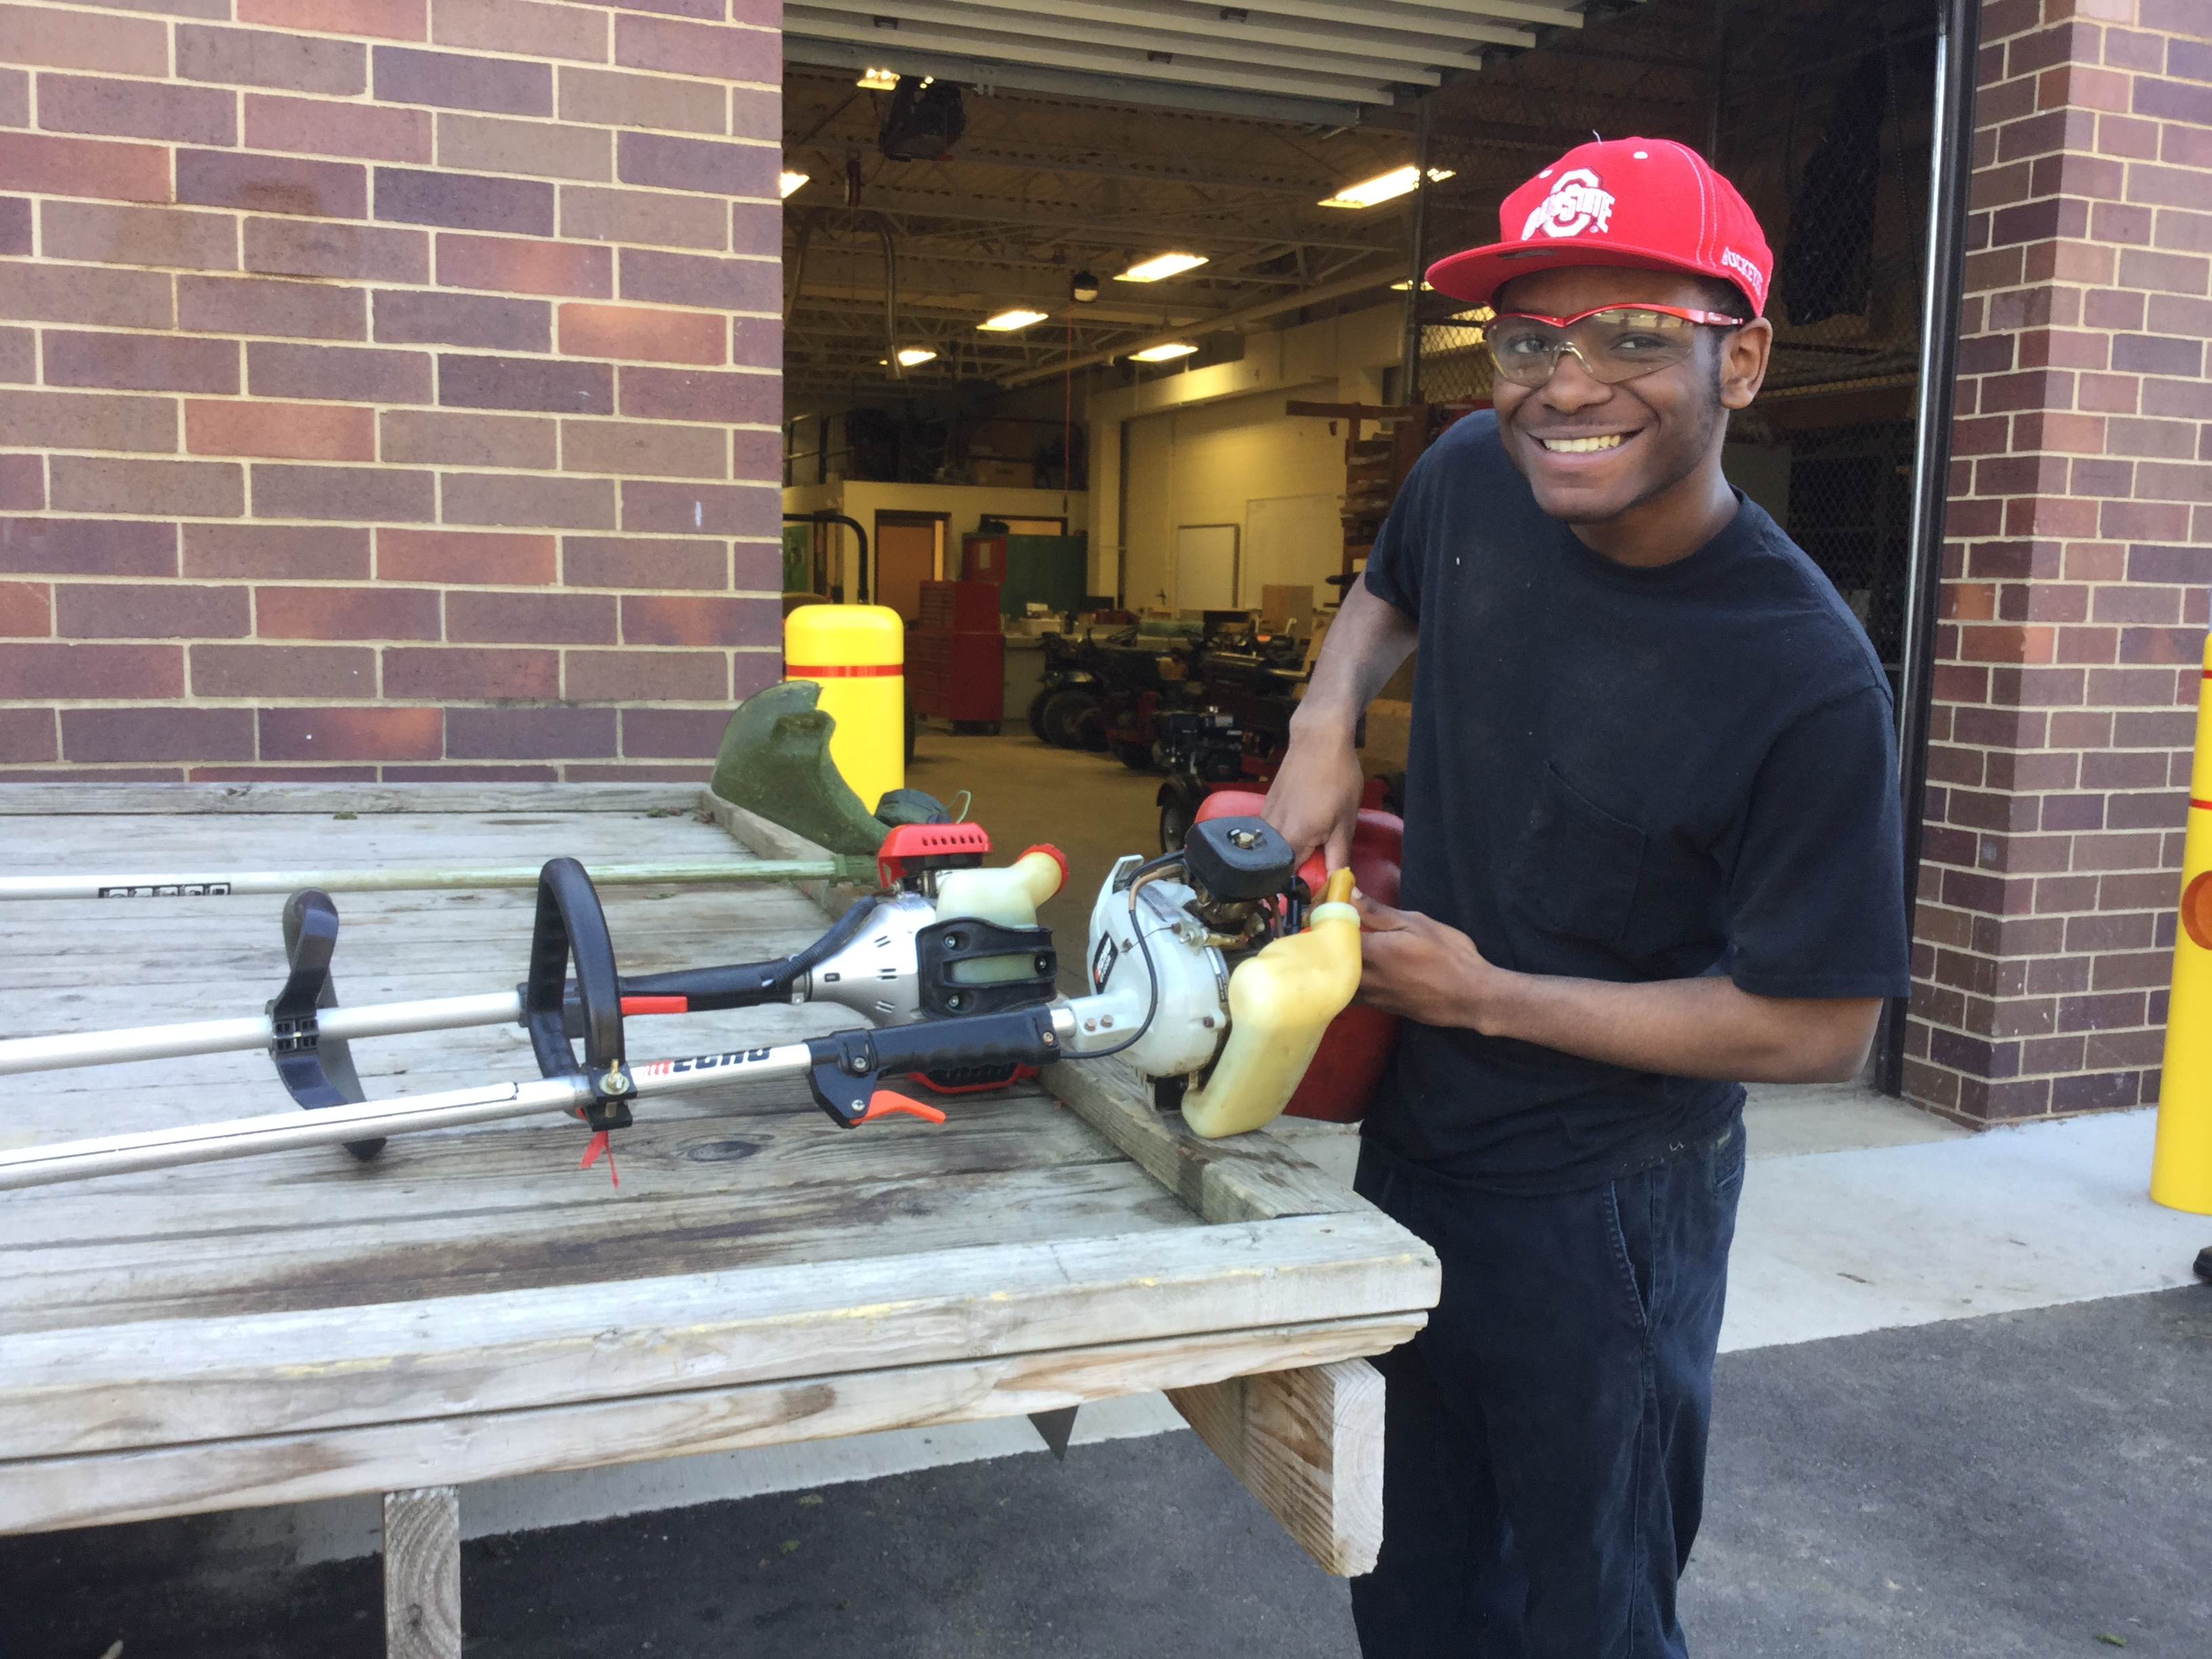 Mechanical, Groundskeeping, and Construction